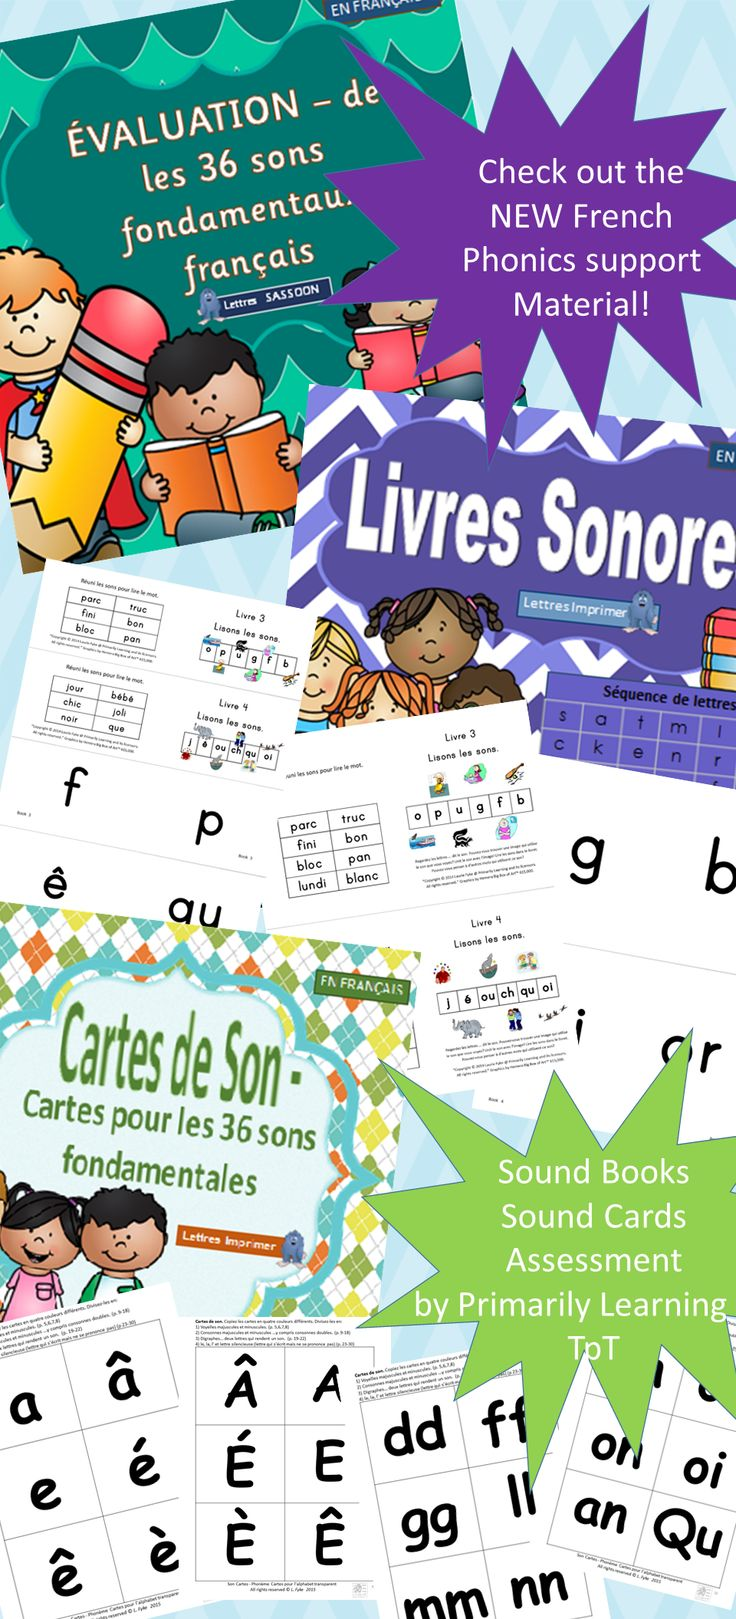 $ NEW!! Products for French Teachers working with phonics!  Supports Le manuel phonique. CHECK OUT Primarily Learning on TpT!   Use the FRENCH Phonics Support category to narrow your search! Follow me to get notified by TpT when new products are posted!   In PRINT & SASSOON.